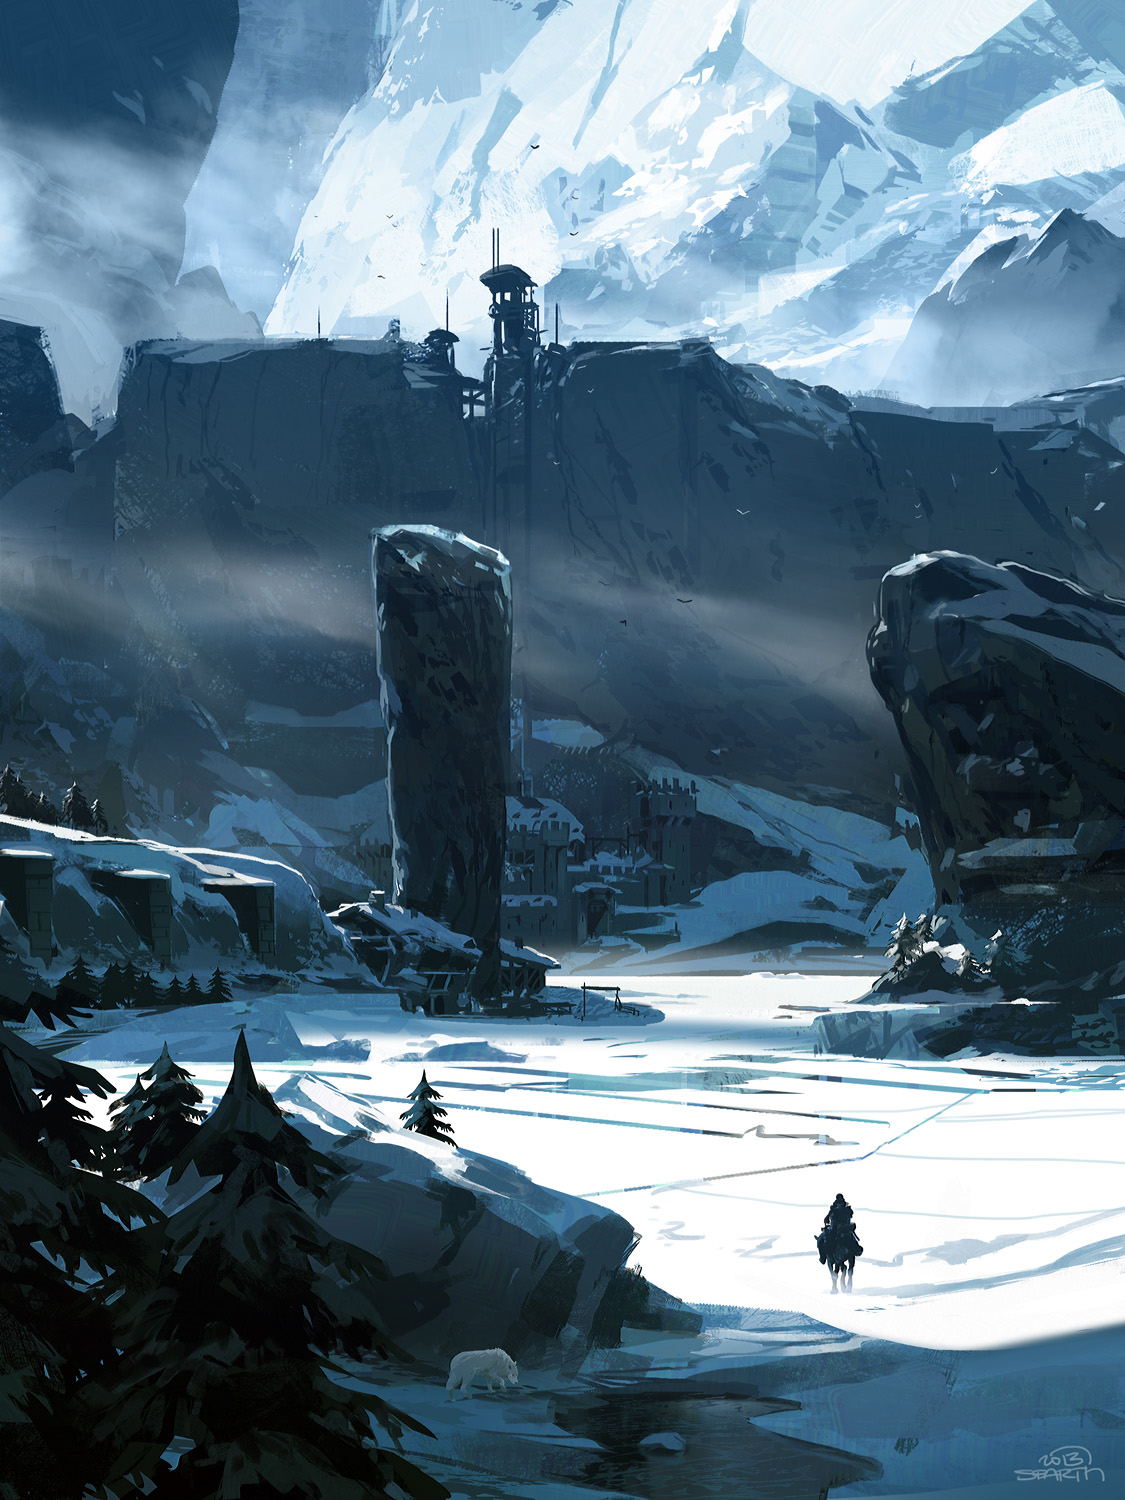 Game Of Thrones Concept Art Illustration 01 Sparth The Wall Zezhou Chen Accent